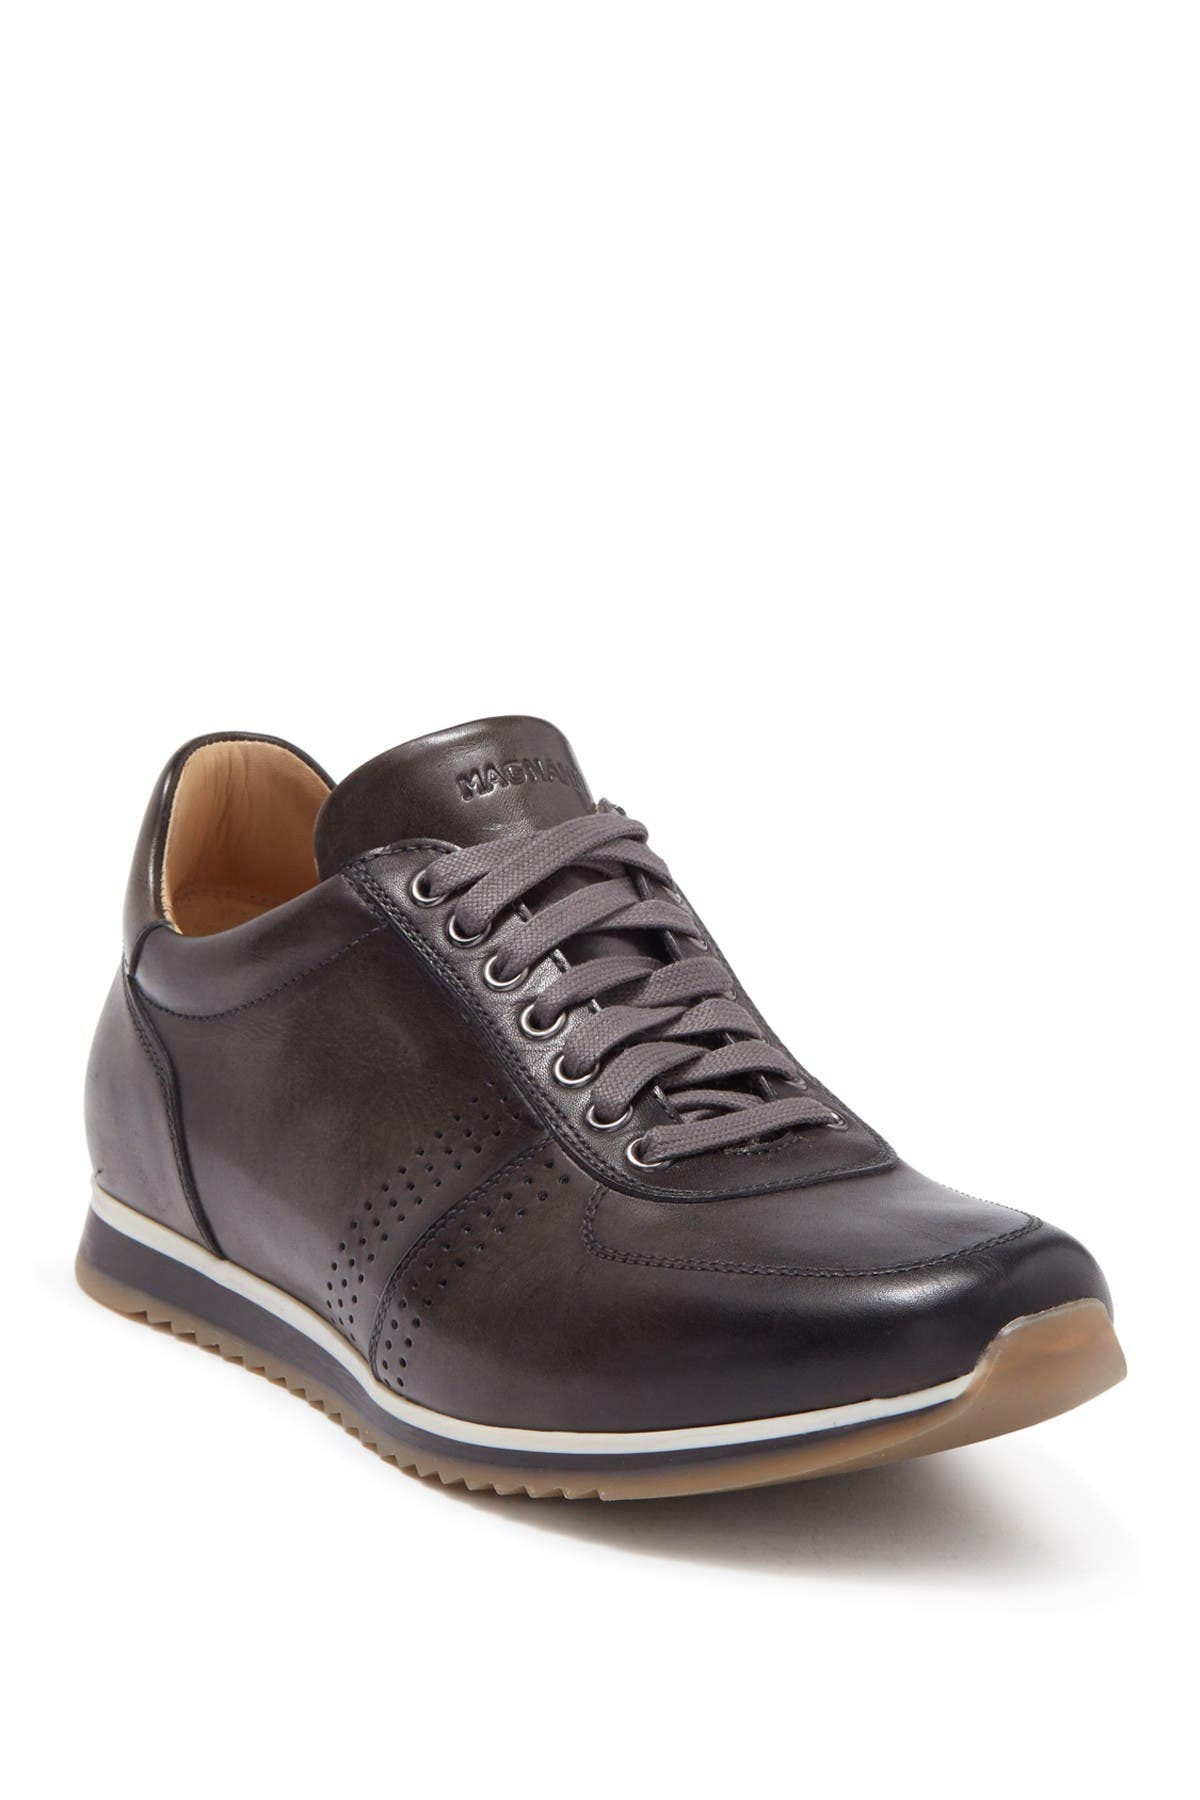 Image of Magnanni Thatcher Sneaker